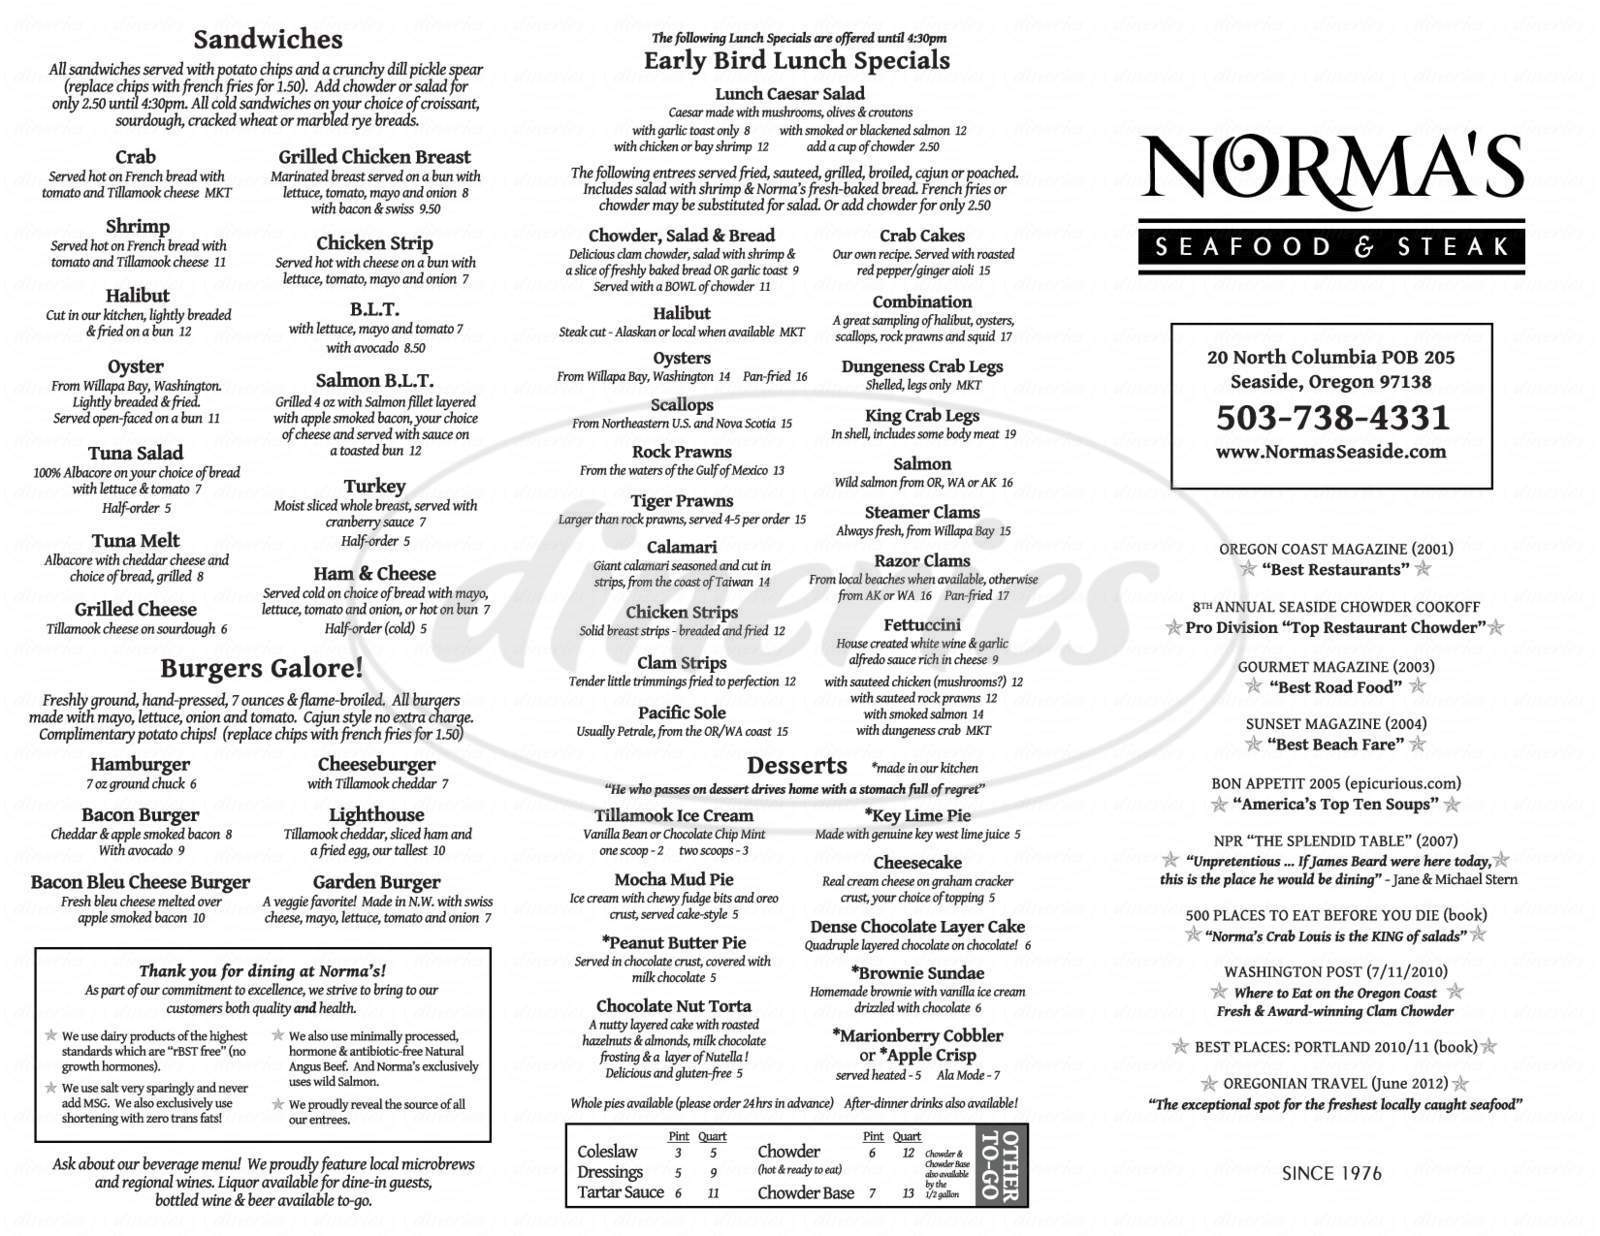 menu for Norma's Seafood & Steak